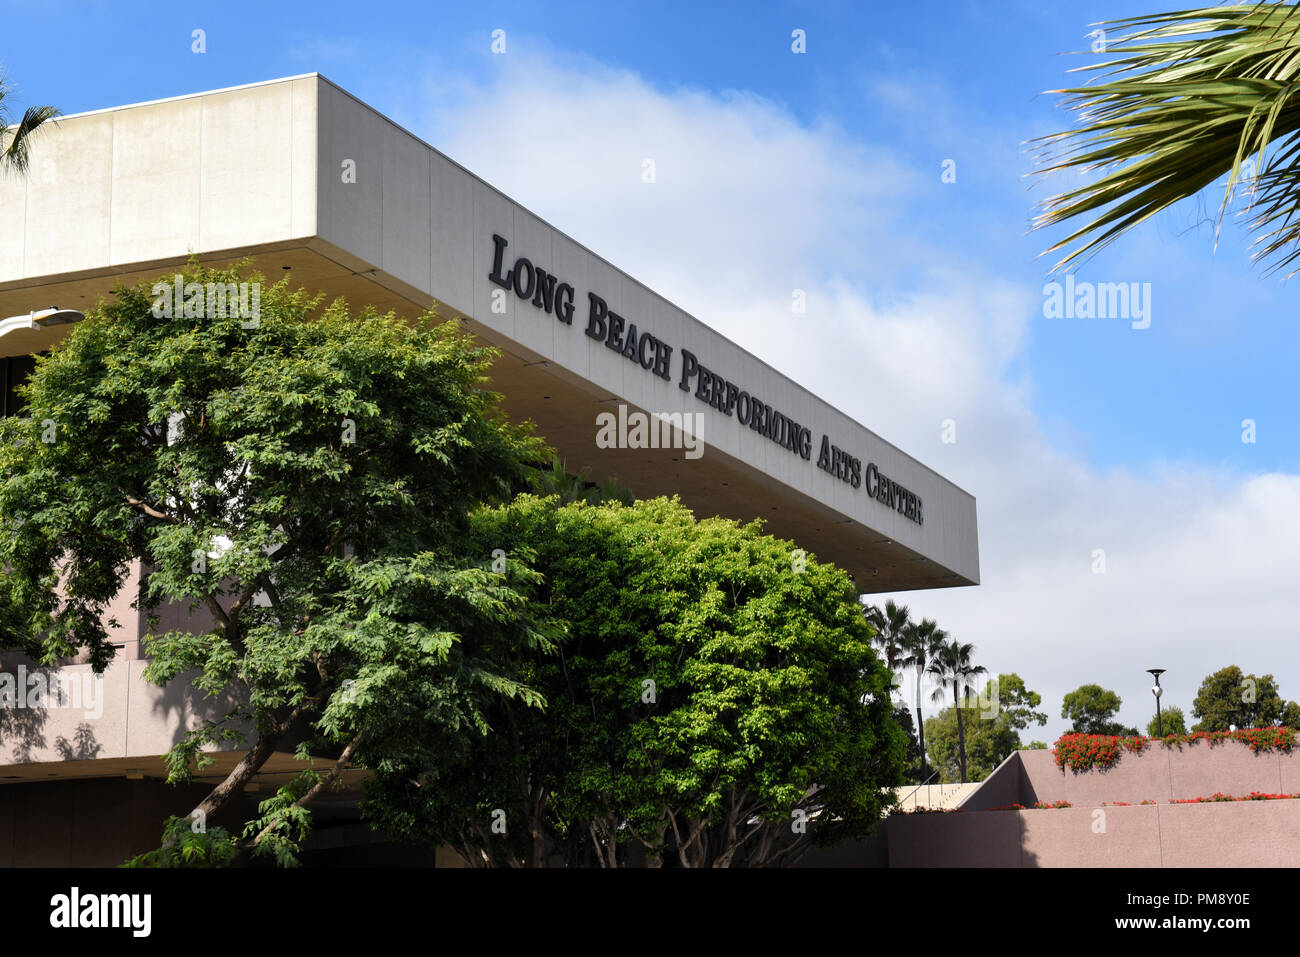 LONG BEACH, CALIF - SEPT 10, 2018: Long Beach Performing Arts Center is home to the Terrace Theater, Center Theater, and Seaside Ballroom. - Stock Image